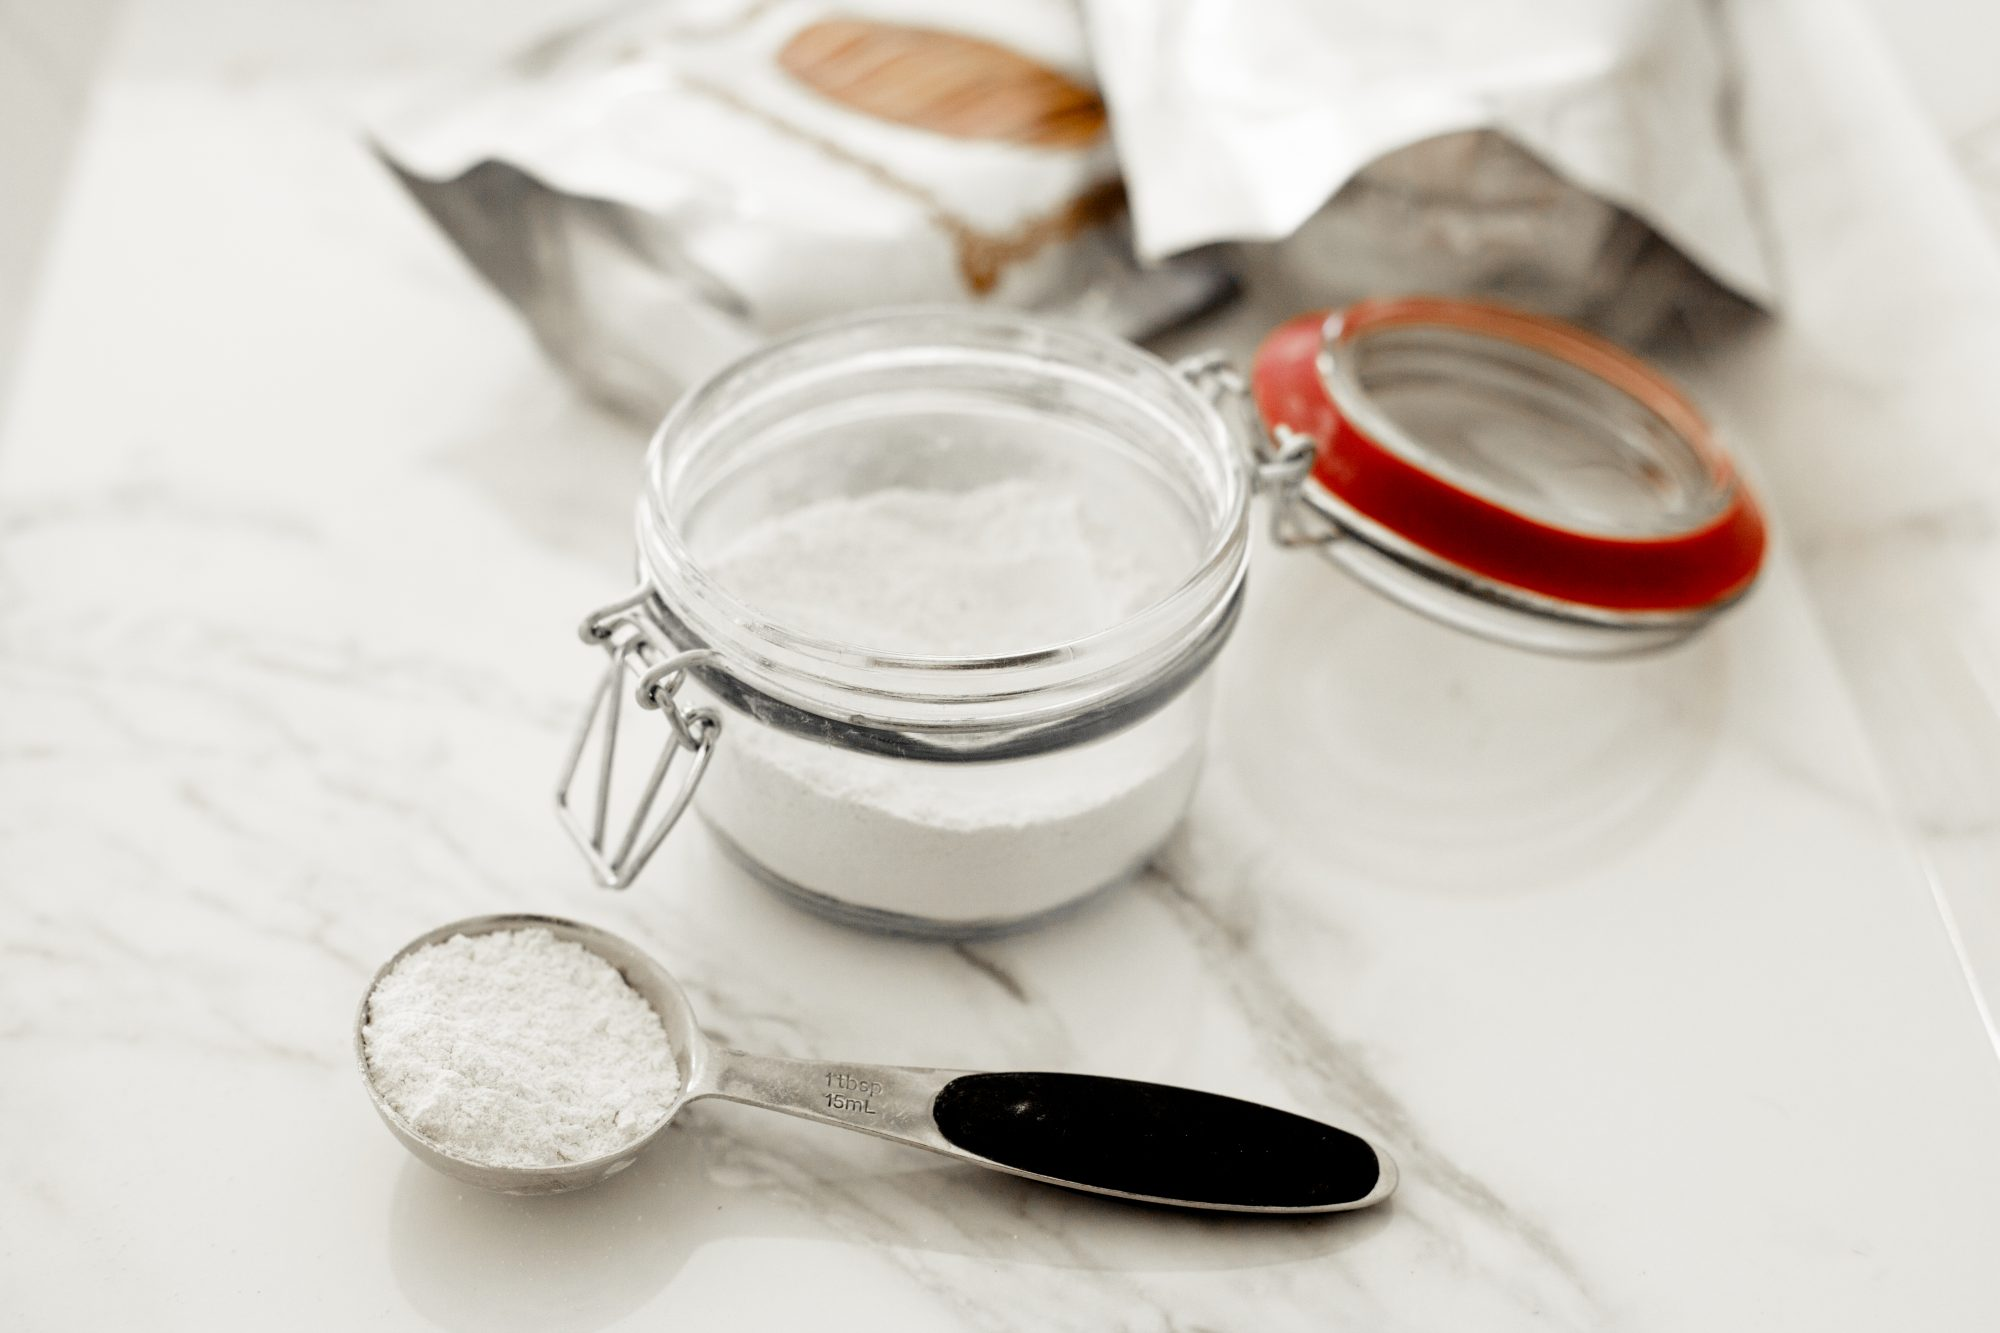 Save money on microdermabrasion and try this easy DIY 2-ingredient scrub inspired by Fresh Beauty and Aveda. It contains no wet ingredients and only requires you to mix with a little bit of water when you use it, so you don't have to worry about a short shelf life. - www.theballeronabudget.com